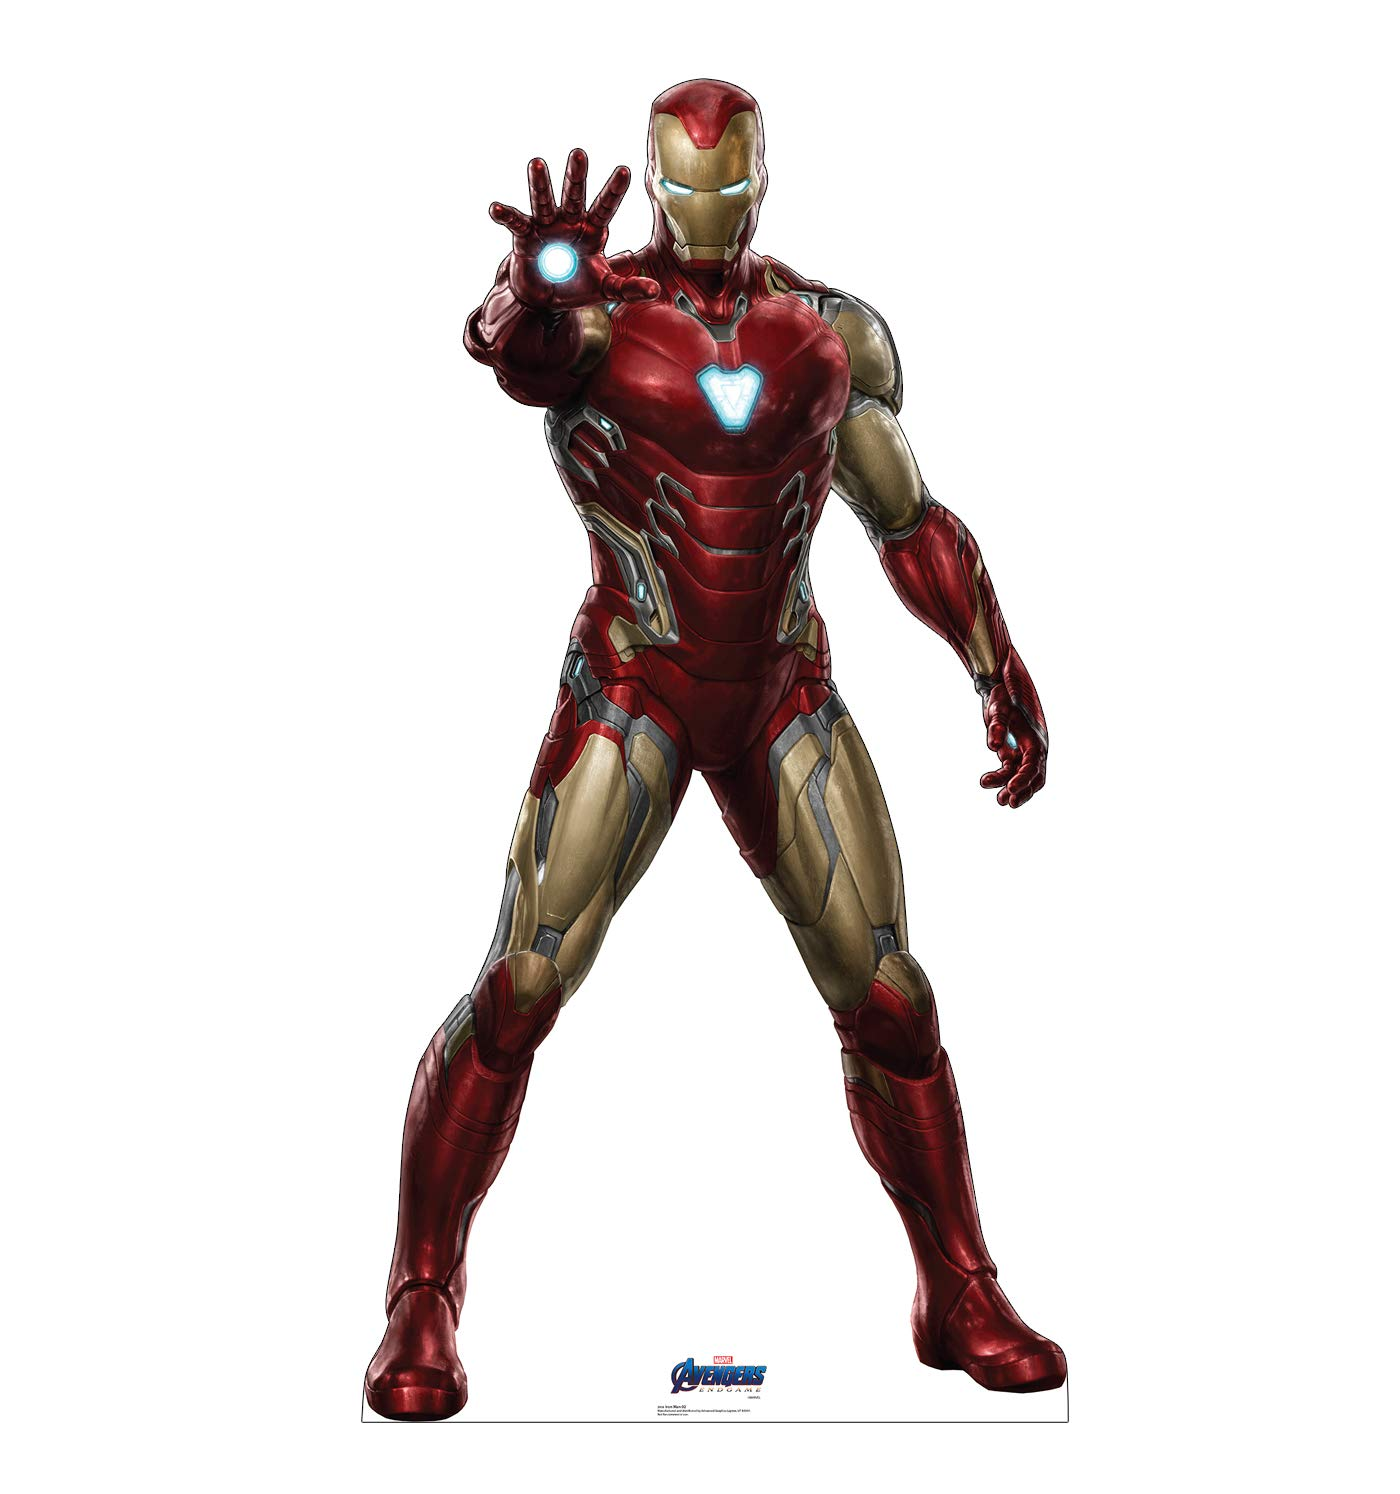 Advanced Graphics Iron Man Life Size Cardboard Cutout Standup - Marvel's Avengers: Endgame (2019 Film)